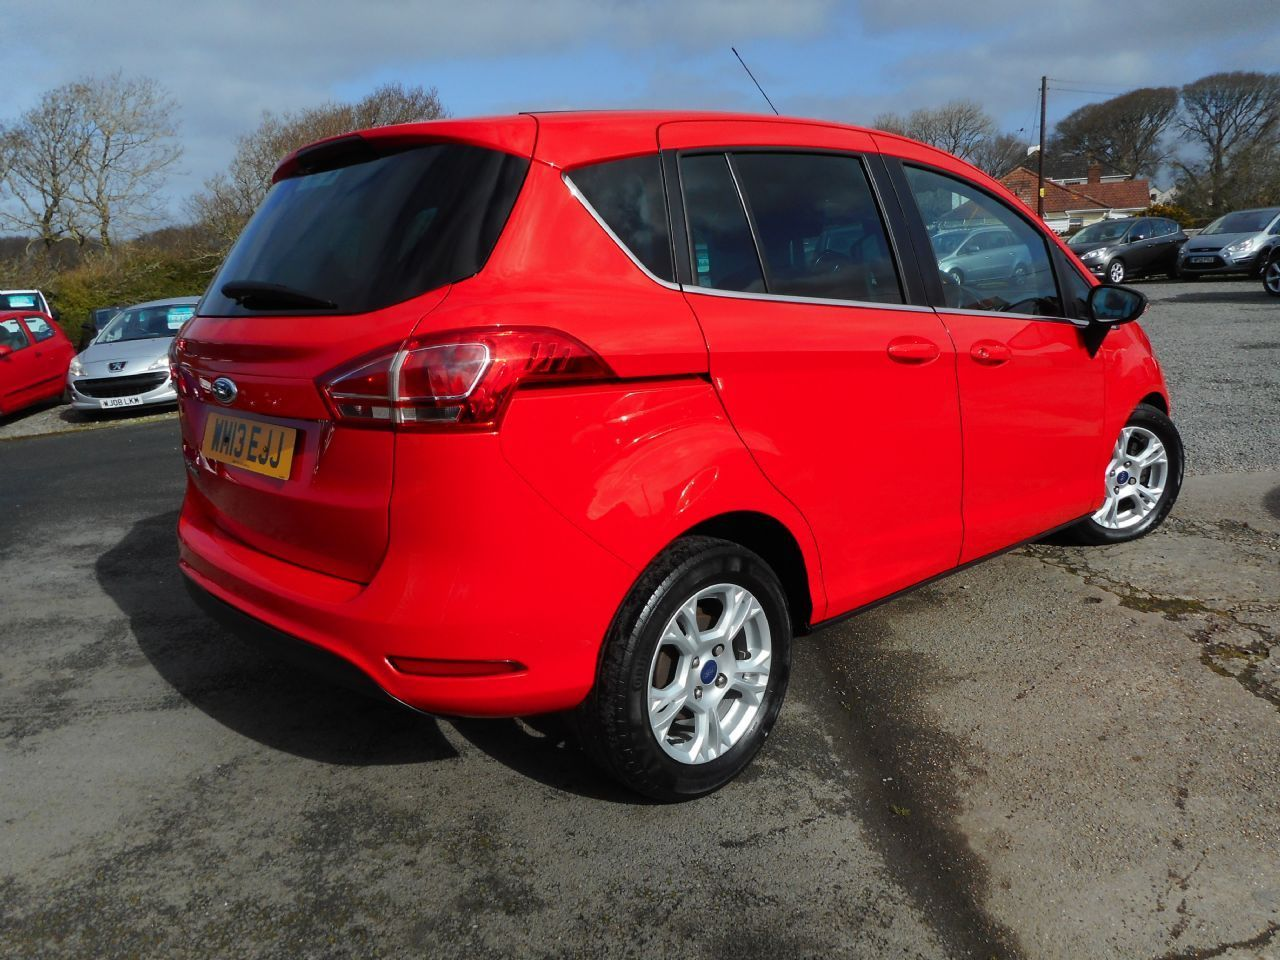 FORD B-MAX 1.4 90PS Zetec (2013) - Picture 3